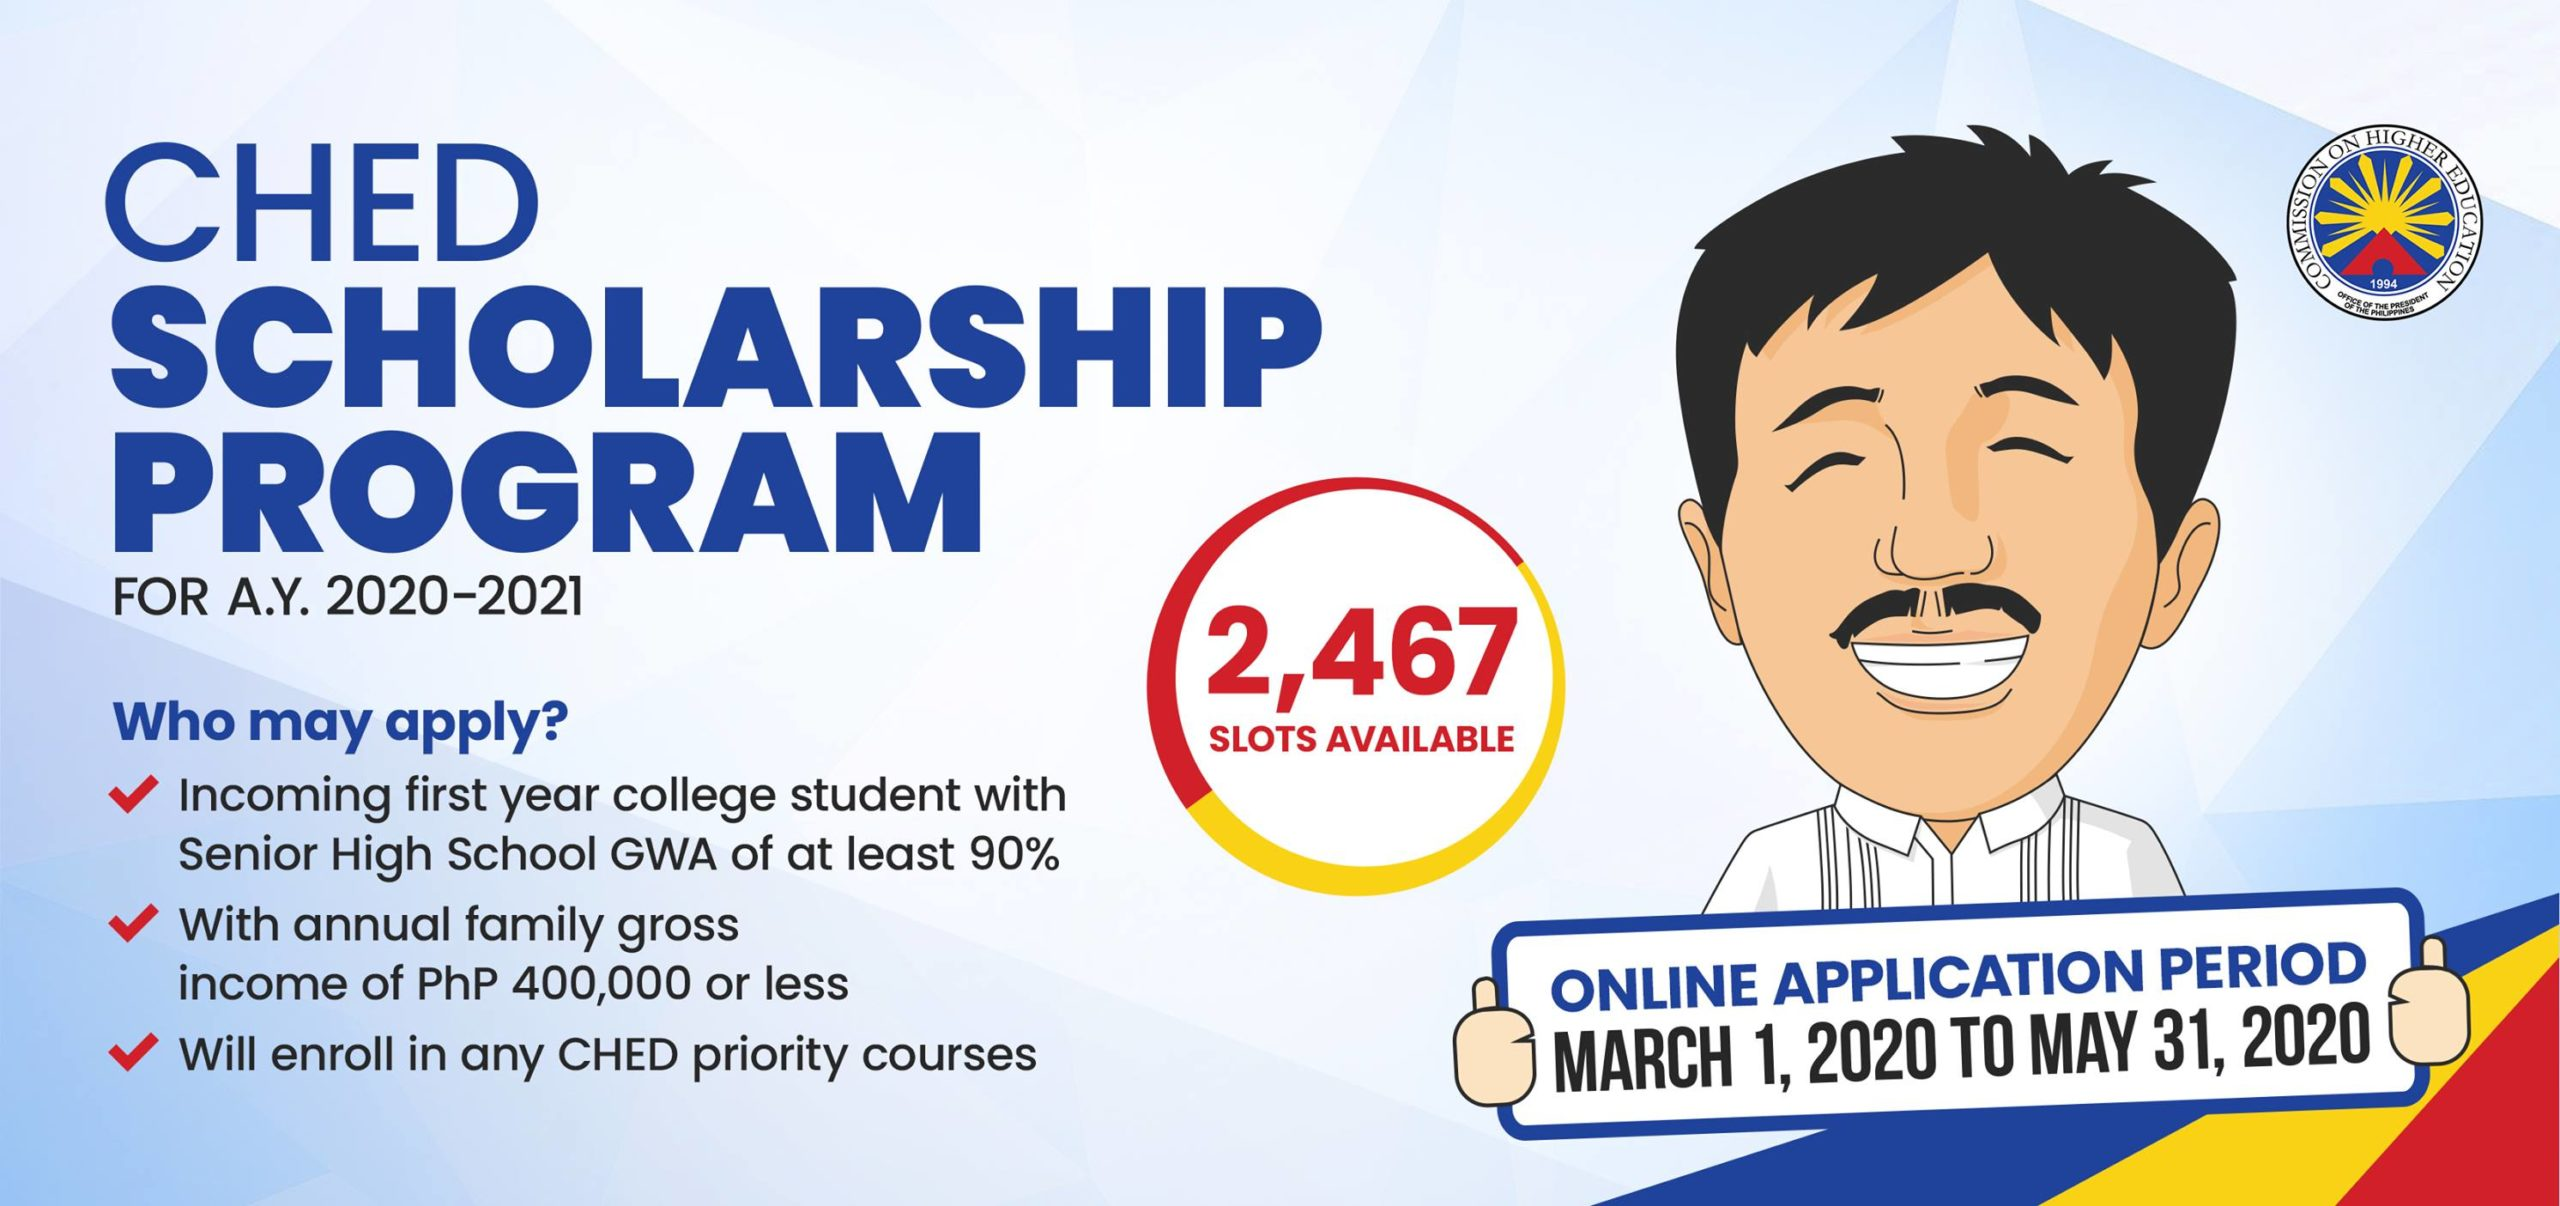 CHED Scholarship Program Details